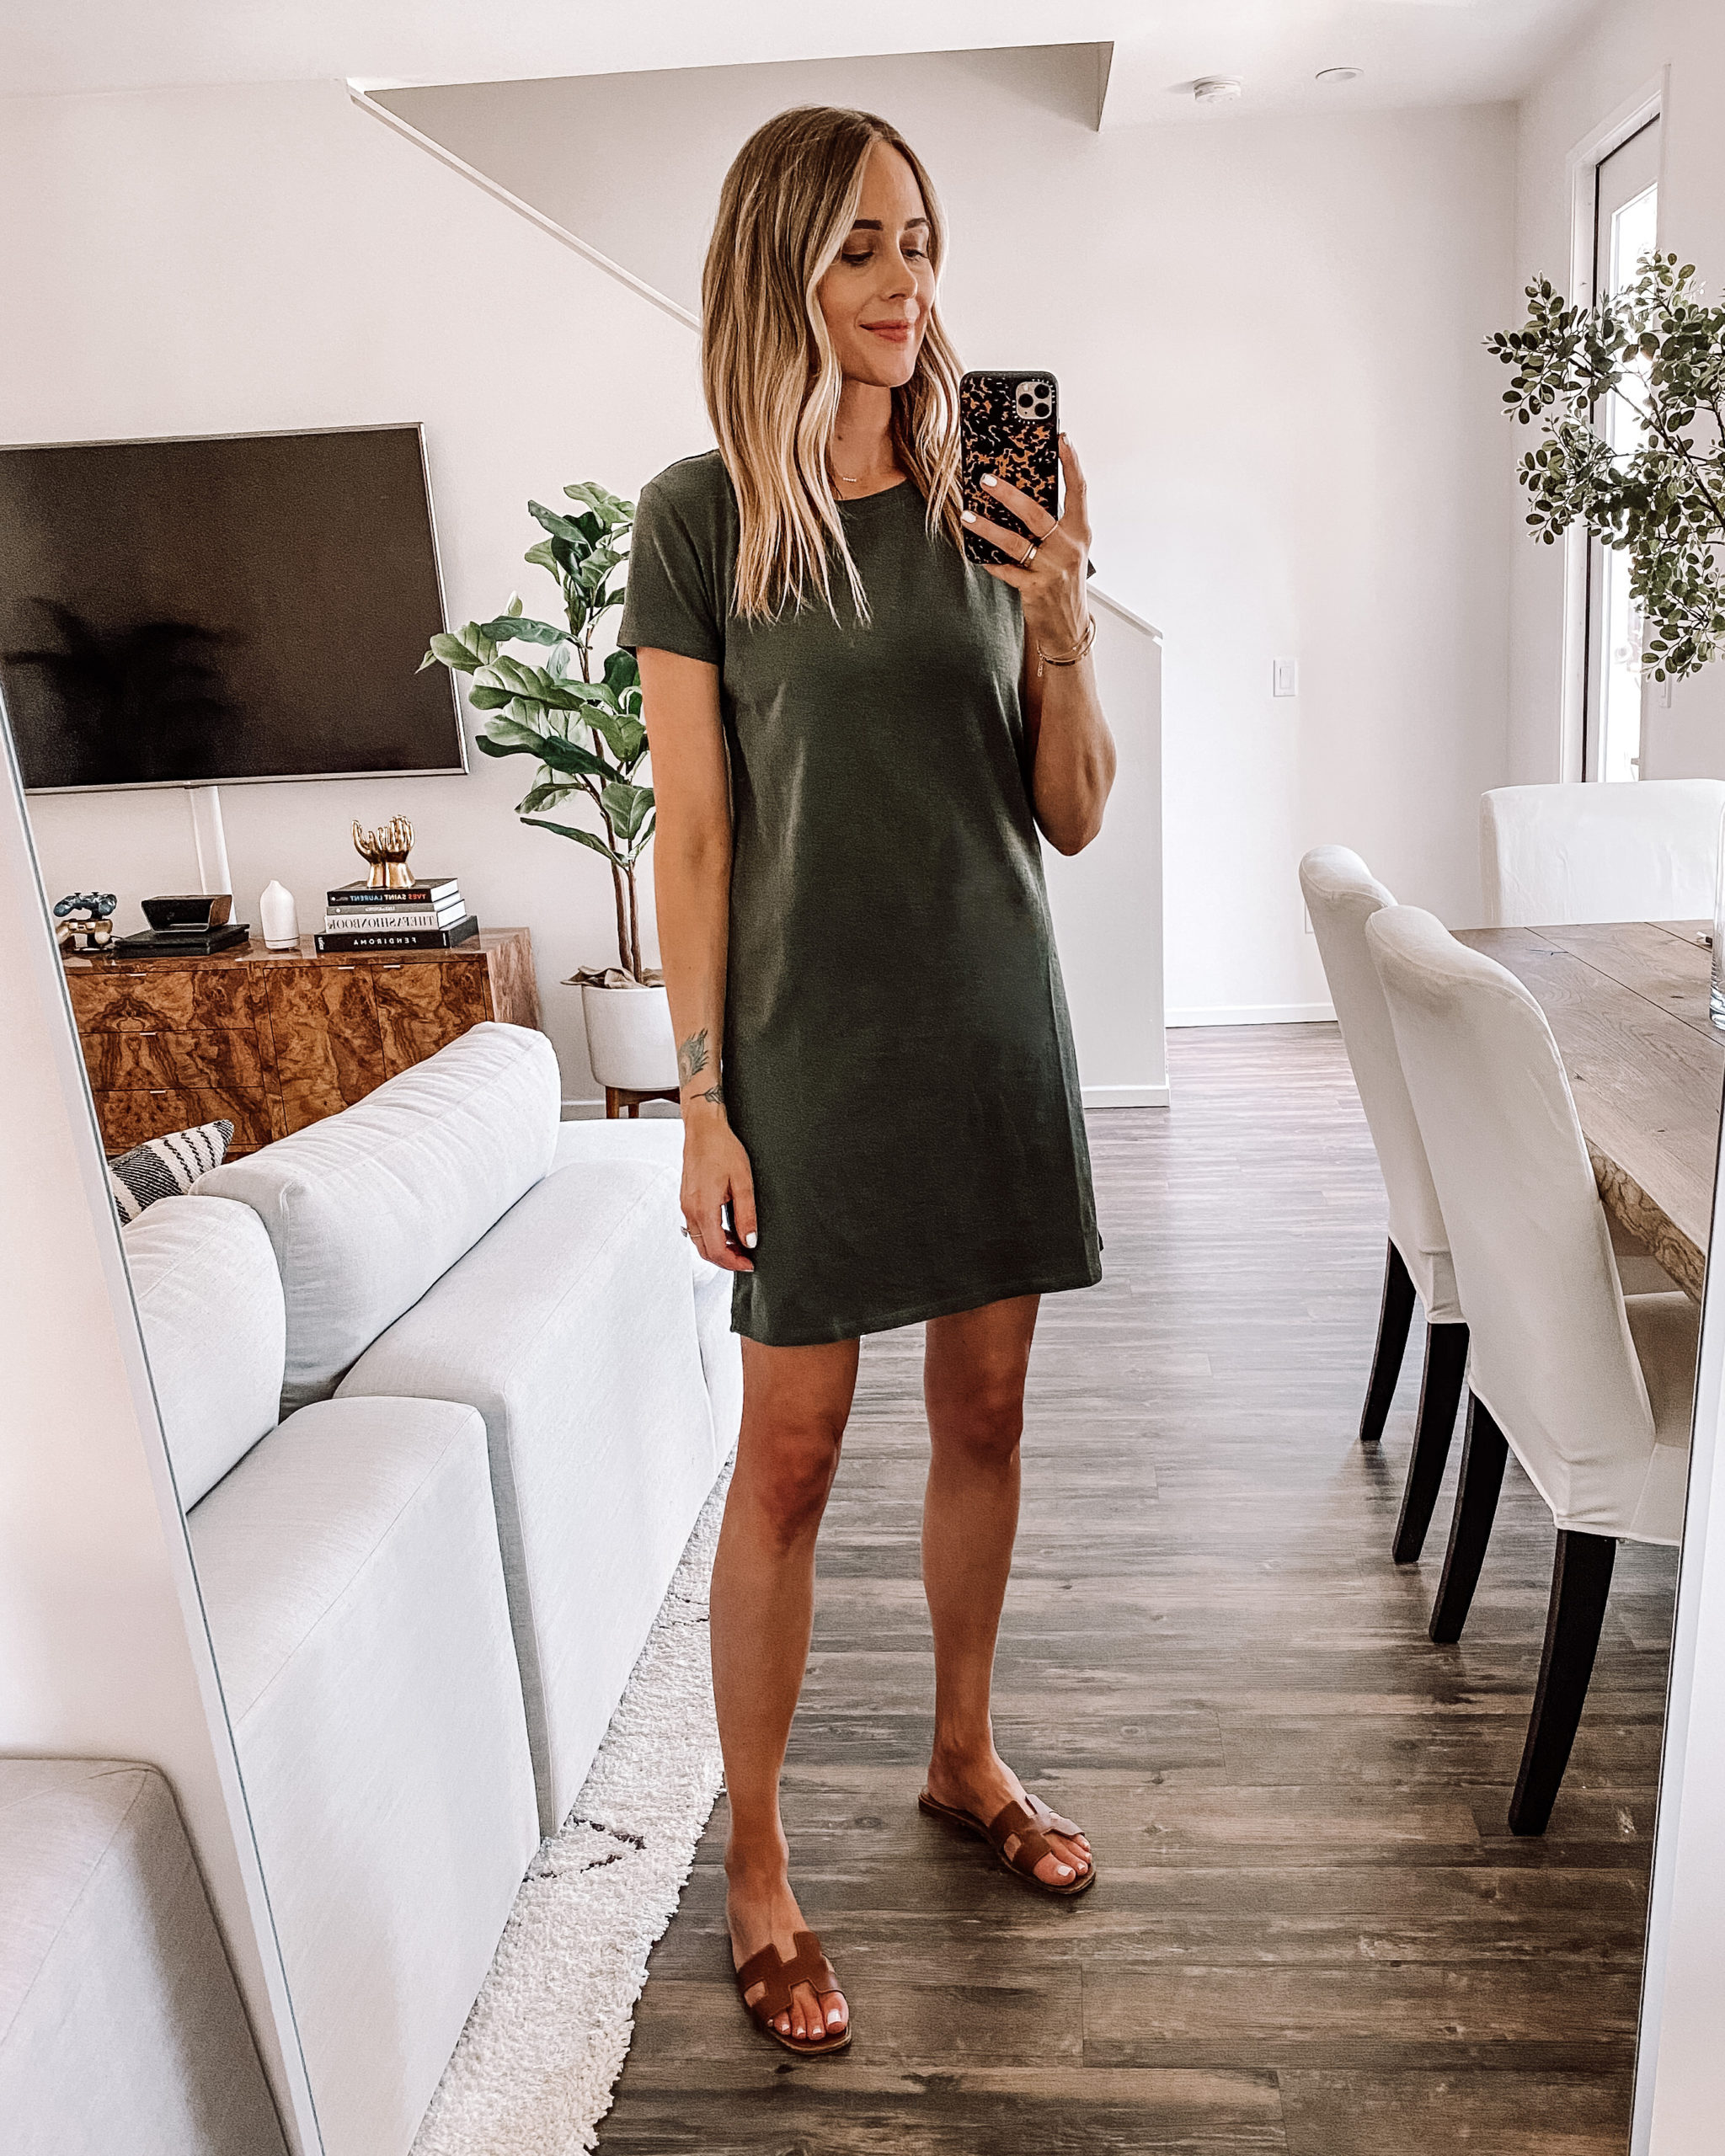 Fashion Jackson Wearing Amazon Fashion Olive Green Short T-Shirt Dress